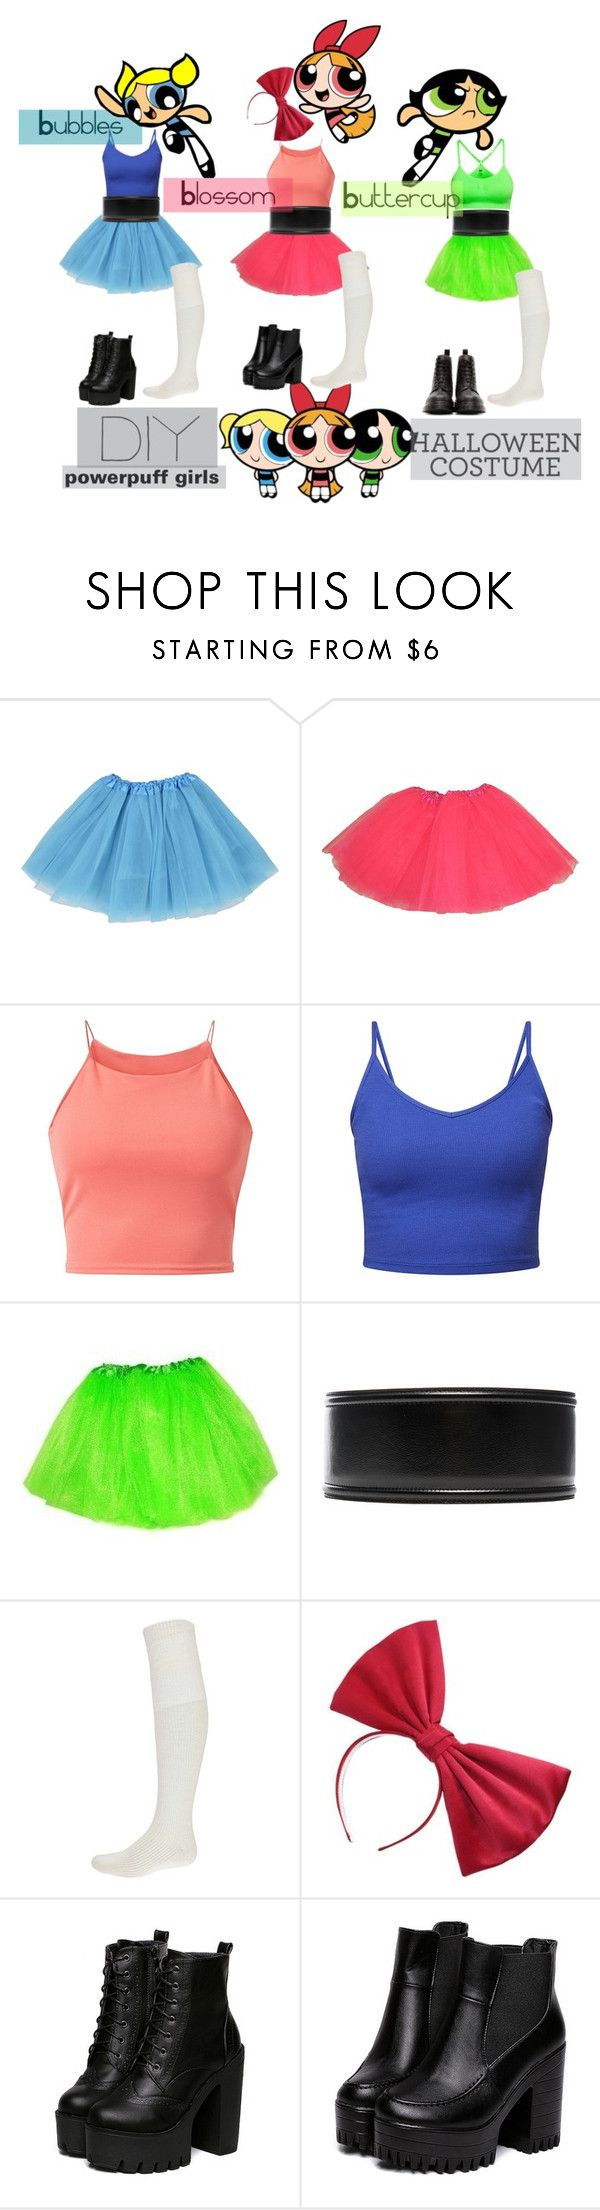 """powerpuff girls"" by mia-v1 ❤ liked on Polyvore featuring Parisian, H&M, Marni, Boohoo, Dr. Martens, Halloween, DIYHalloween and diycostume"